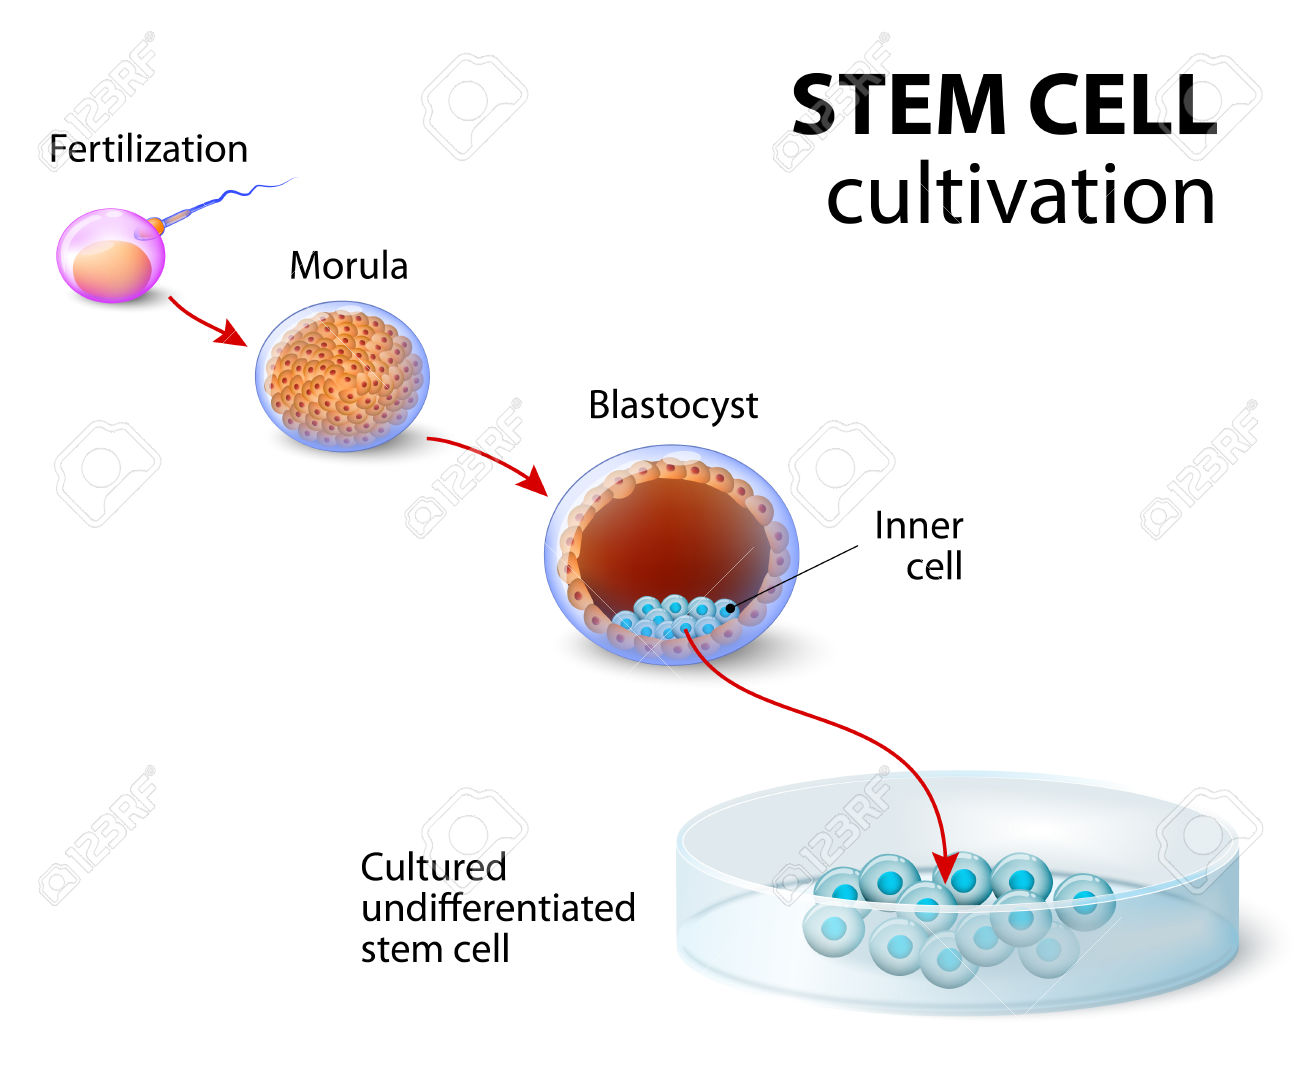 Stem Cell Cultivation. In Vitro Fertilization Of The Egg By A.